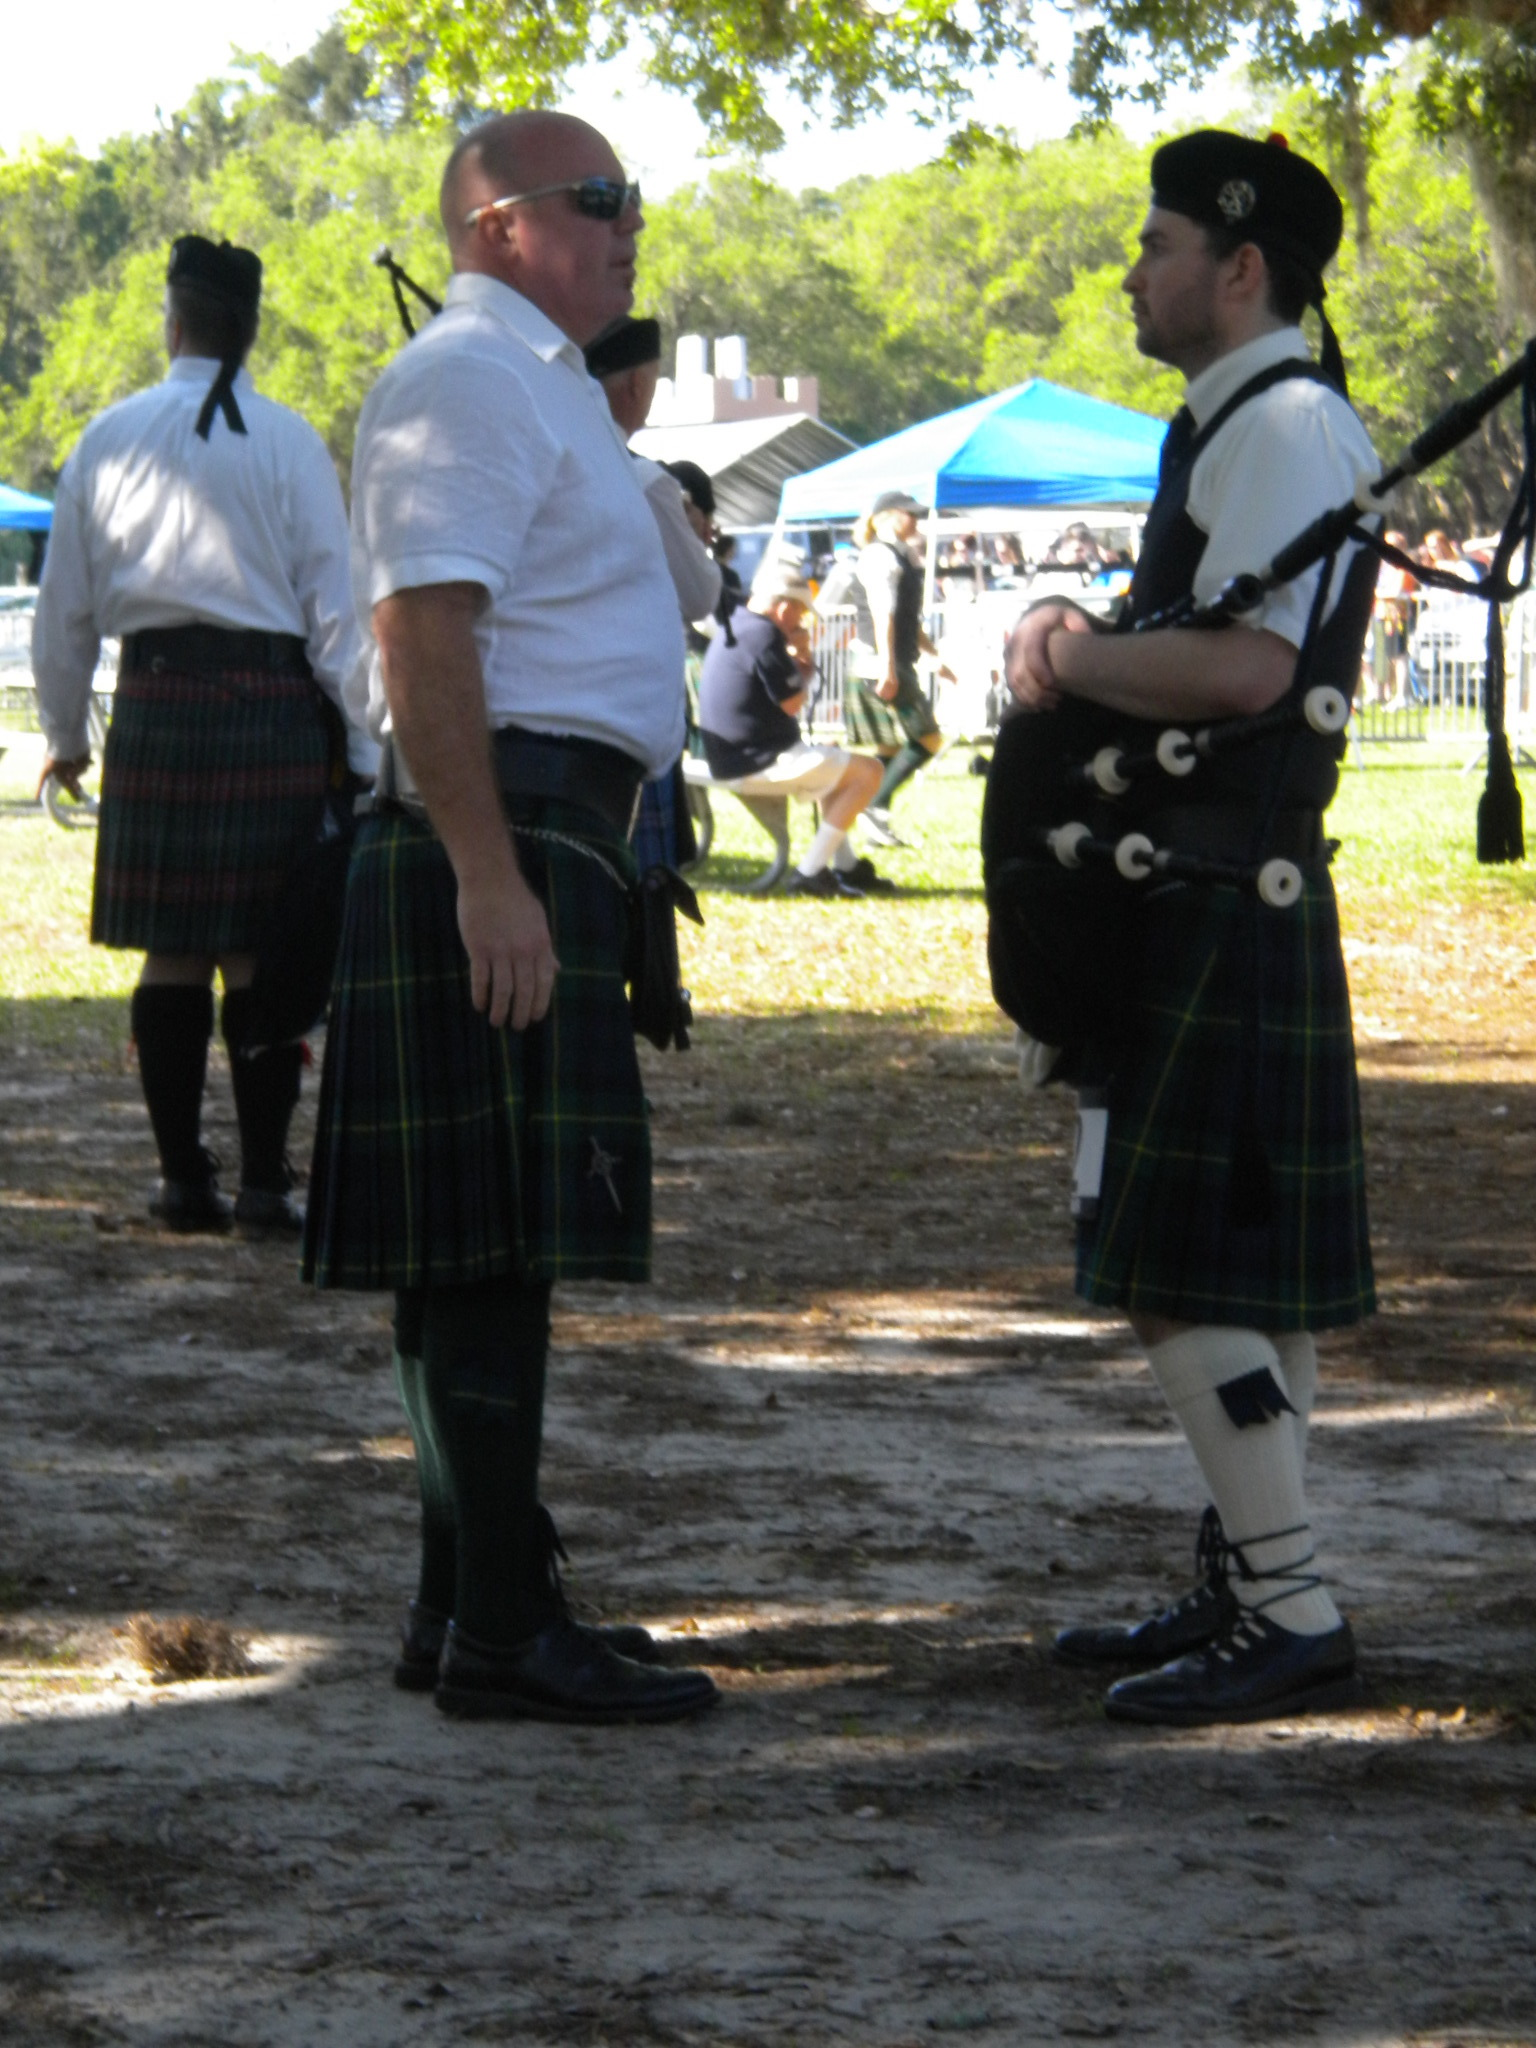 Dunedin highland games